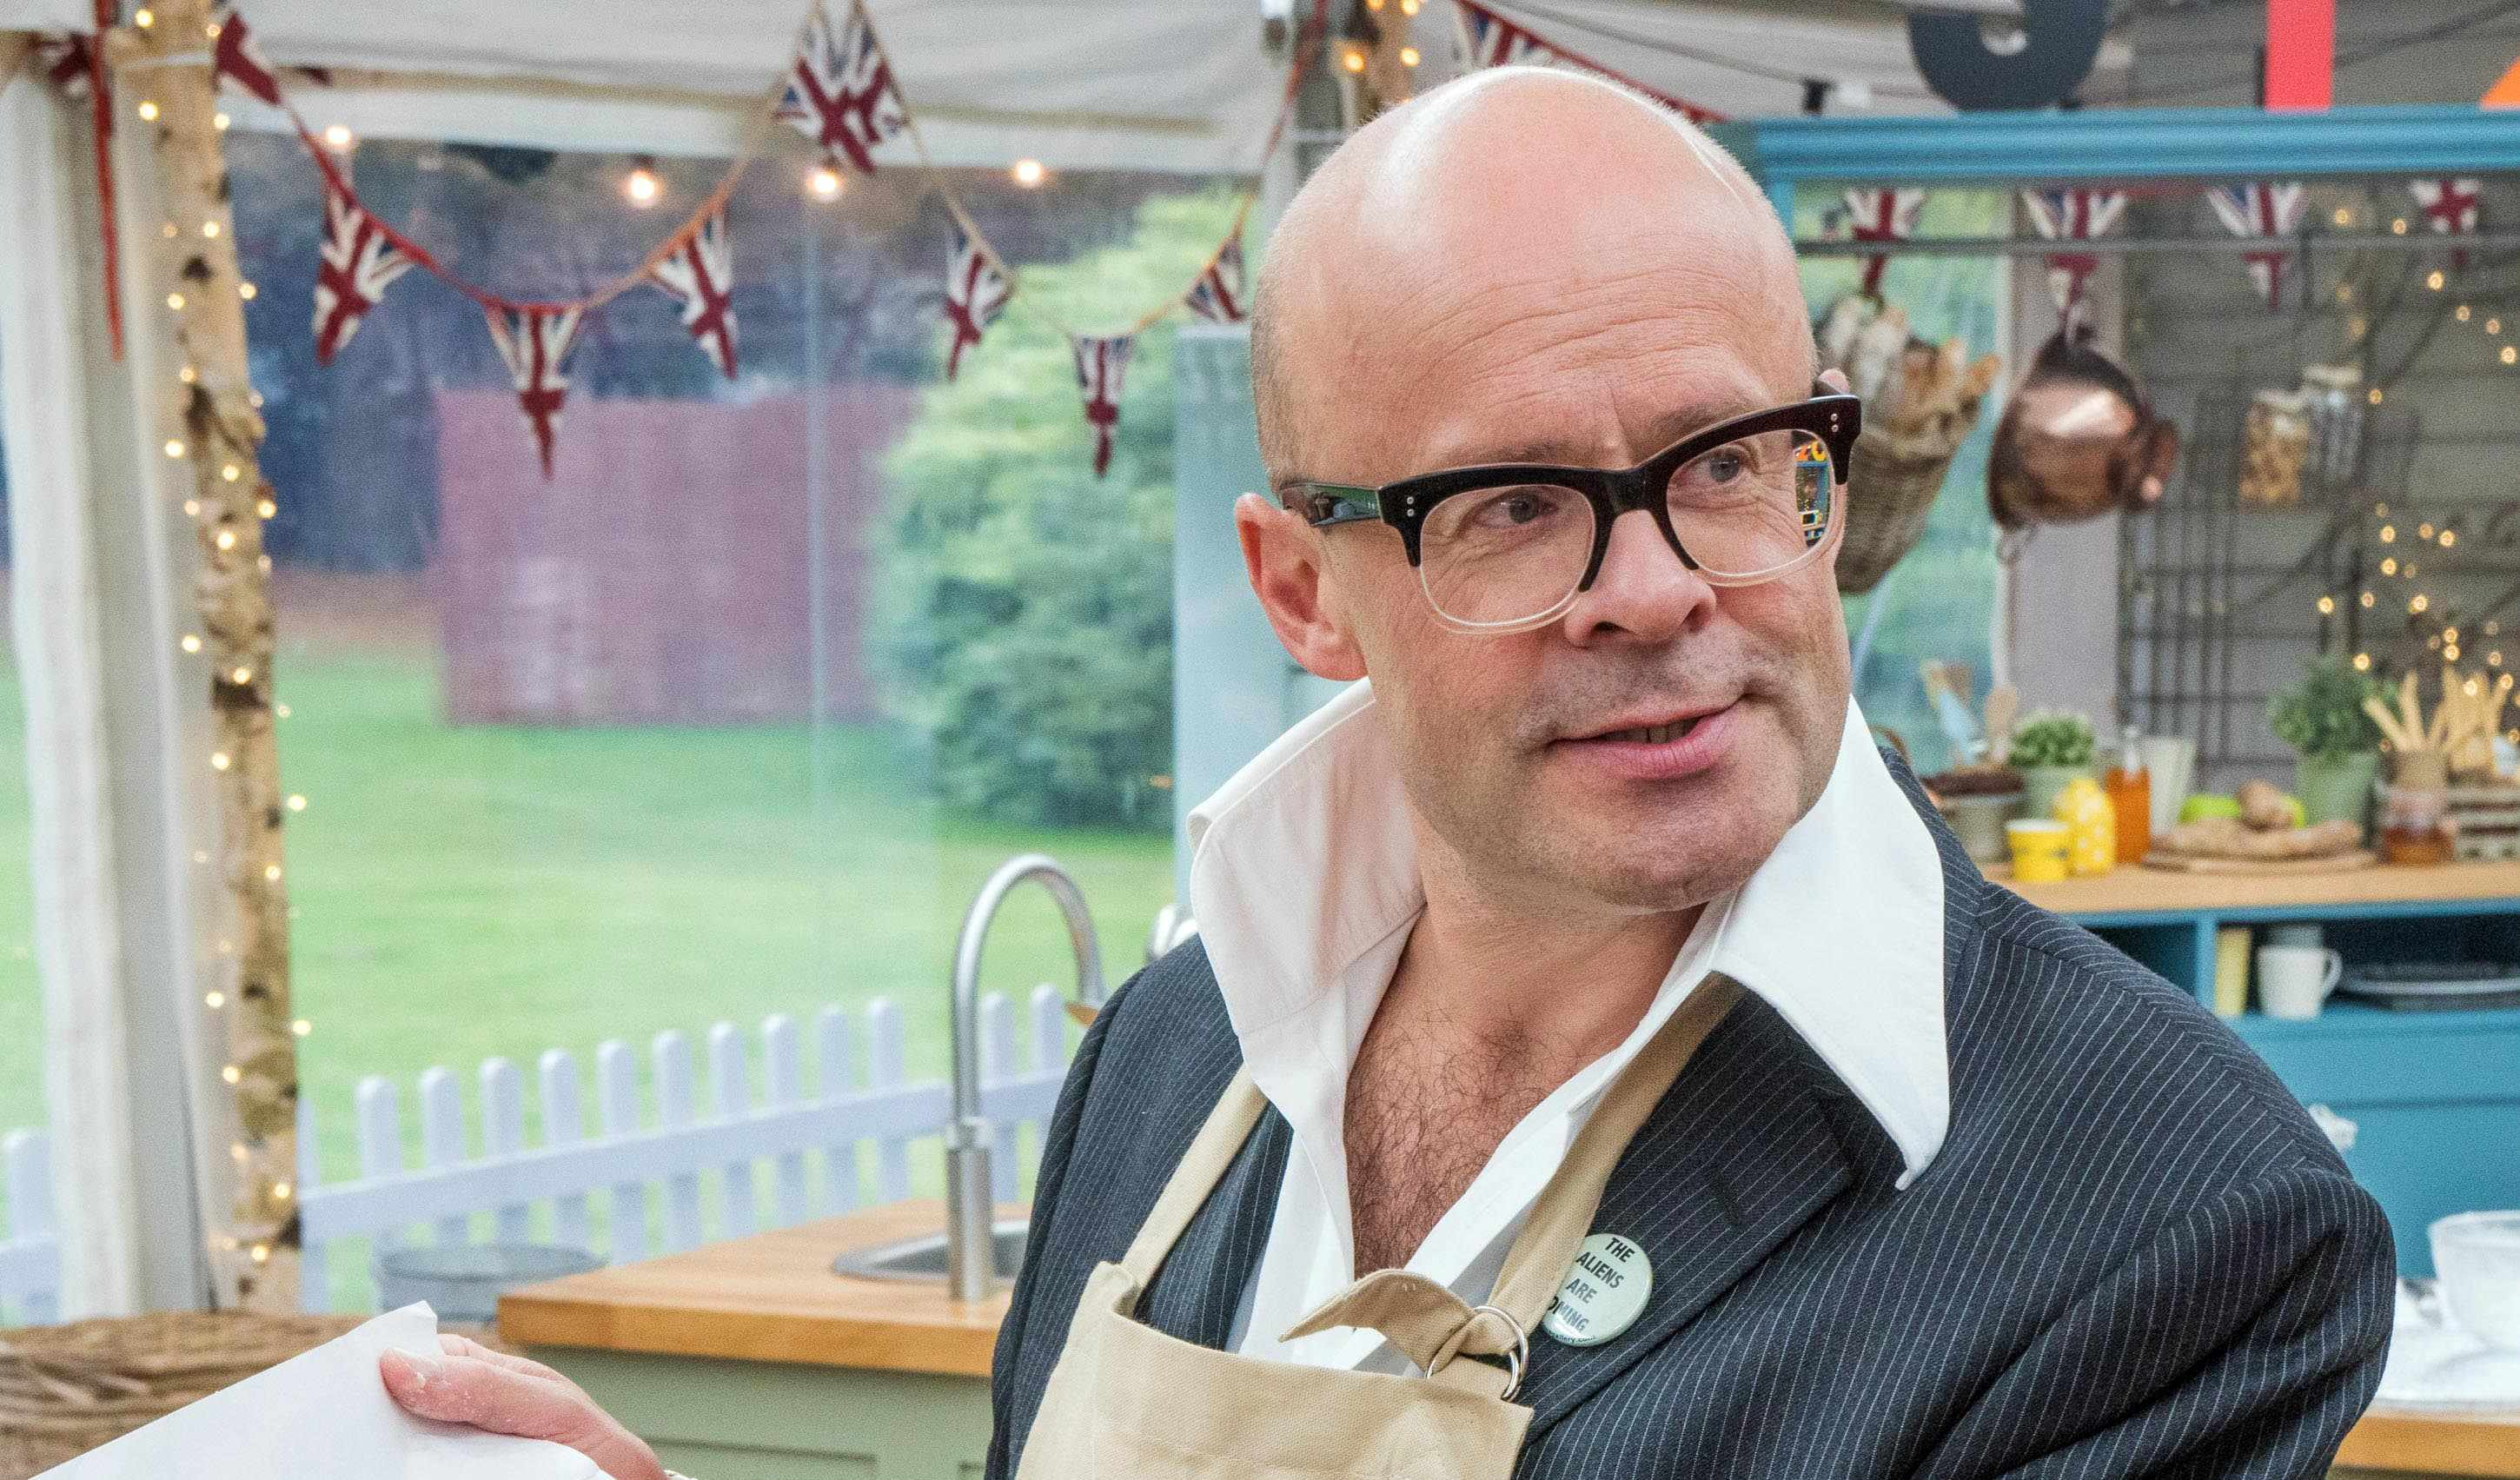 Harry Hill on The Great British Bake Off: Stand To Cancer 2018